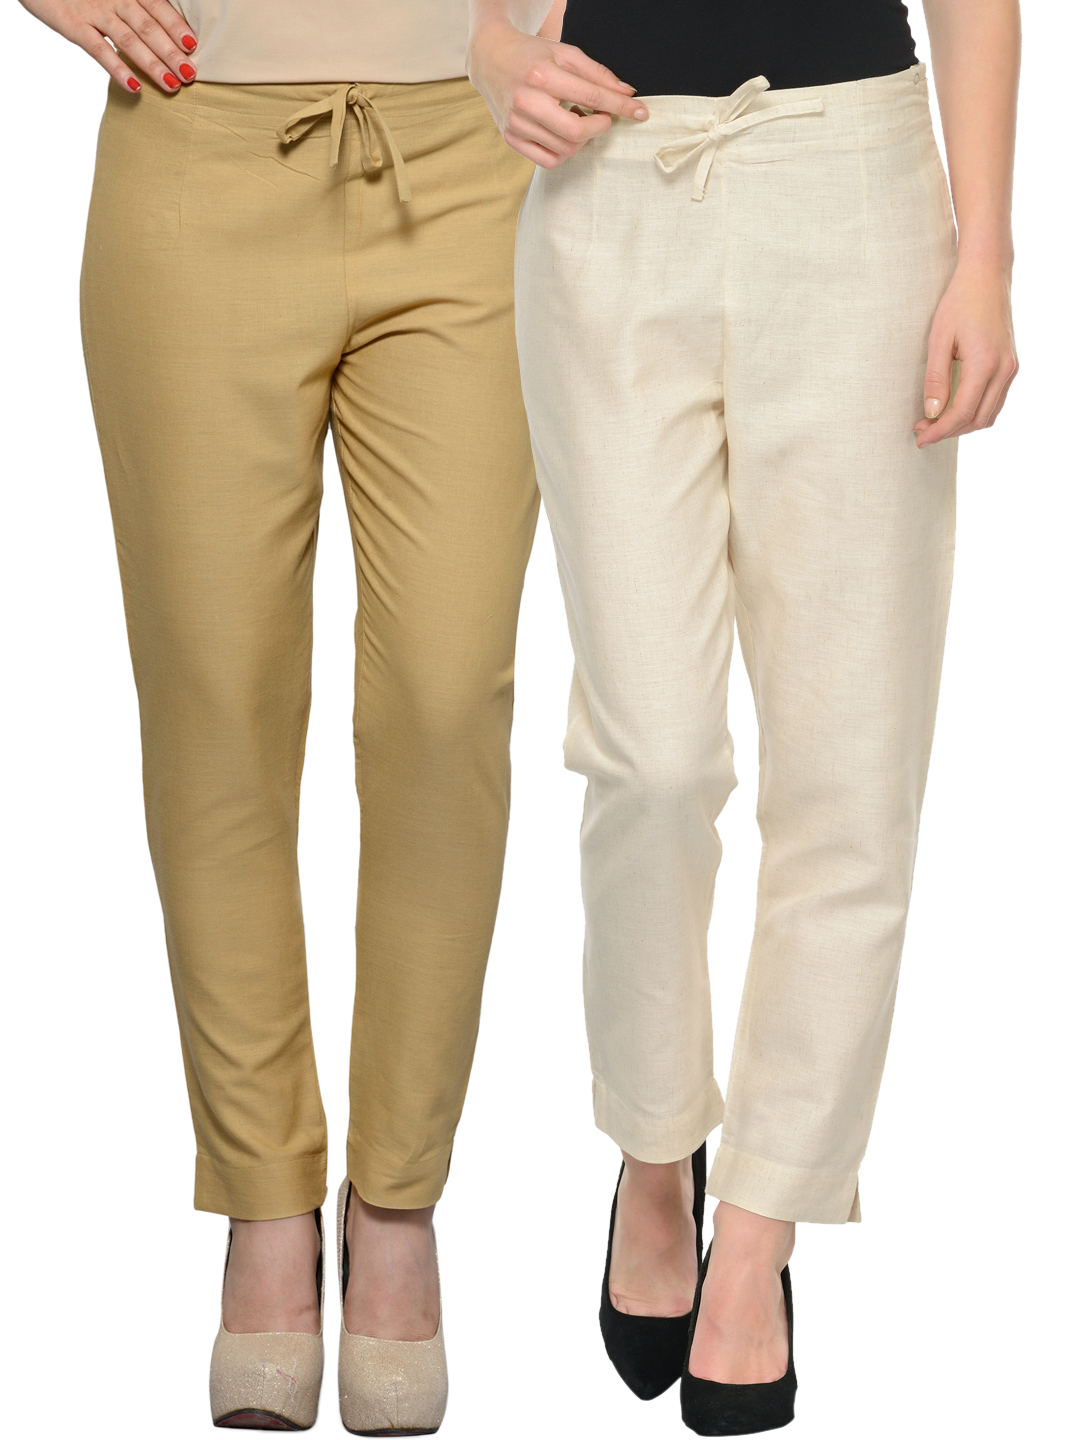 ladies trousers women pack of 2 trousers mutturv